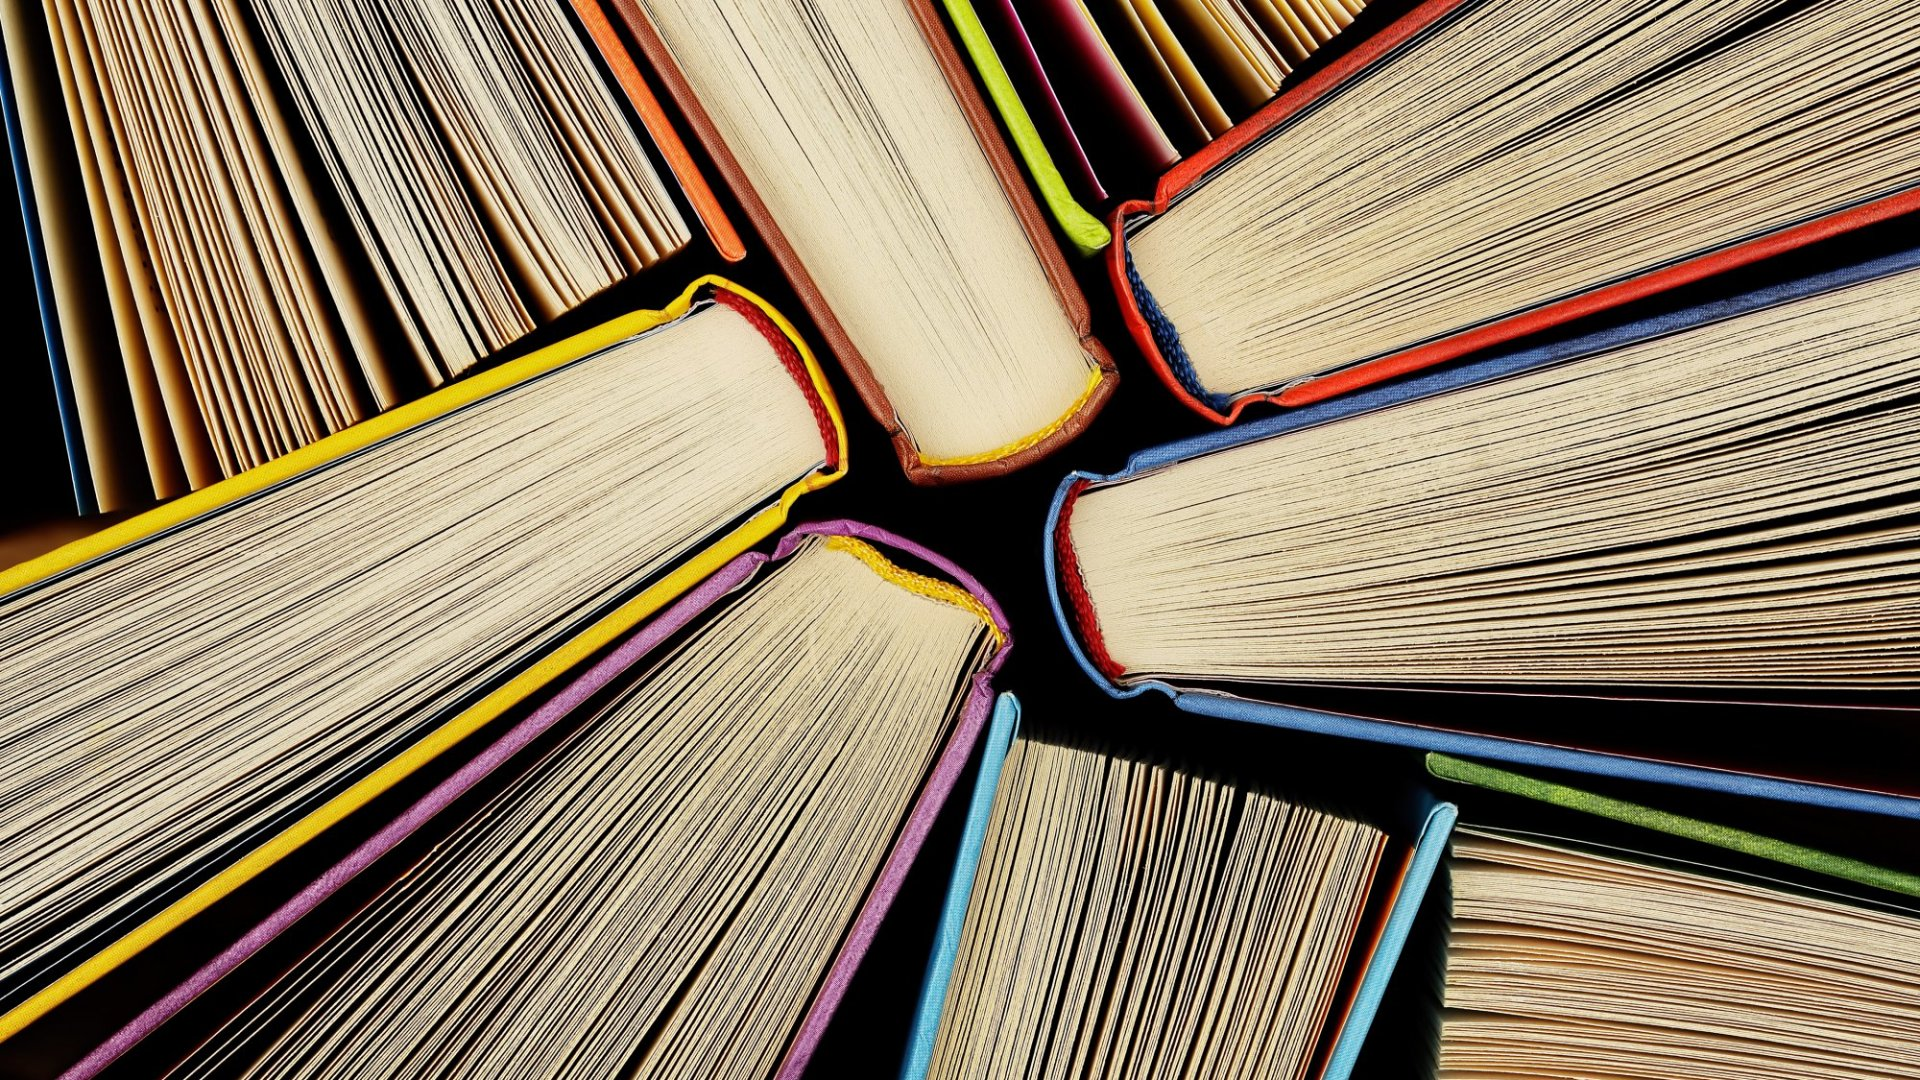 Craving Fresh Insight? These Recent Books Will Inspire and Motivate You